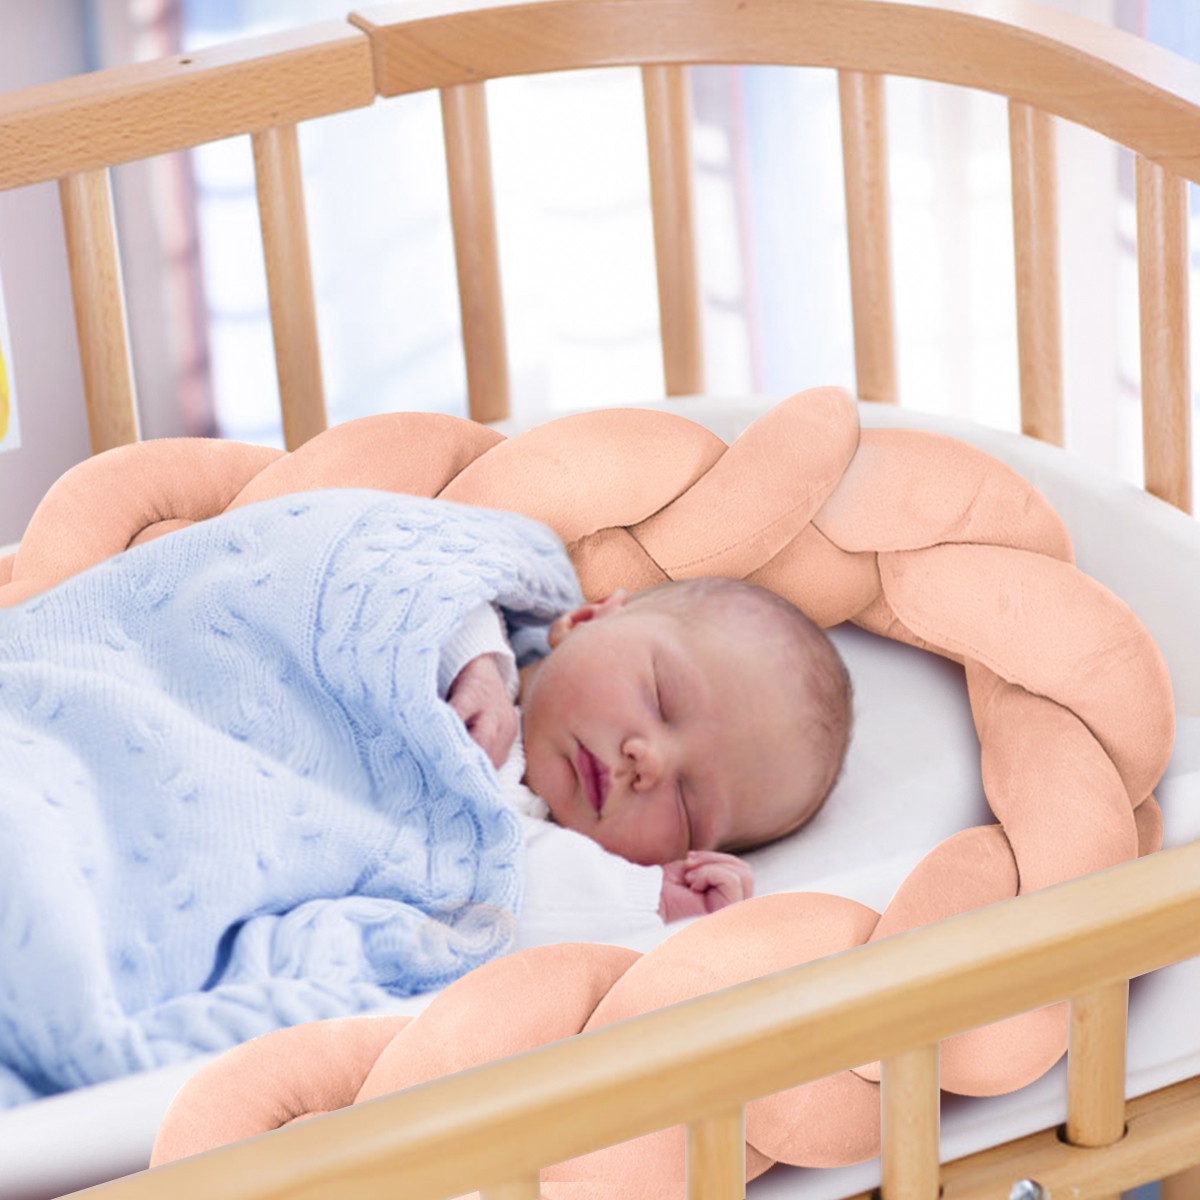 New 100CM Baby Infant Plush Crib Bumper Bed Bedding Cot Braid Pillow Pad Protector